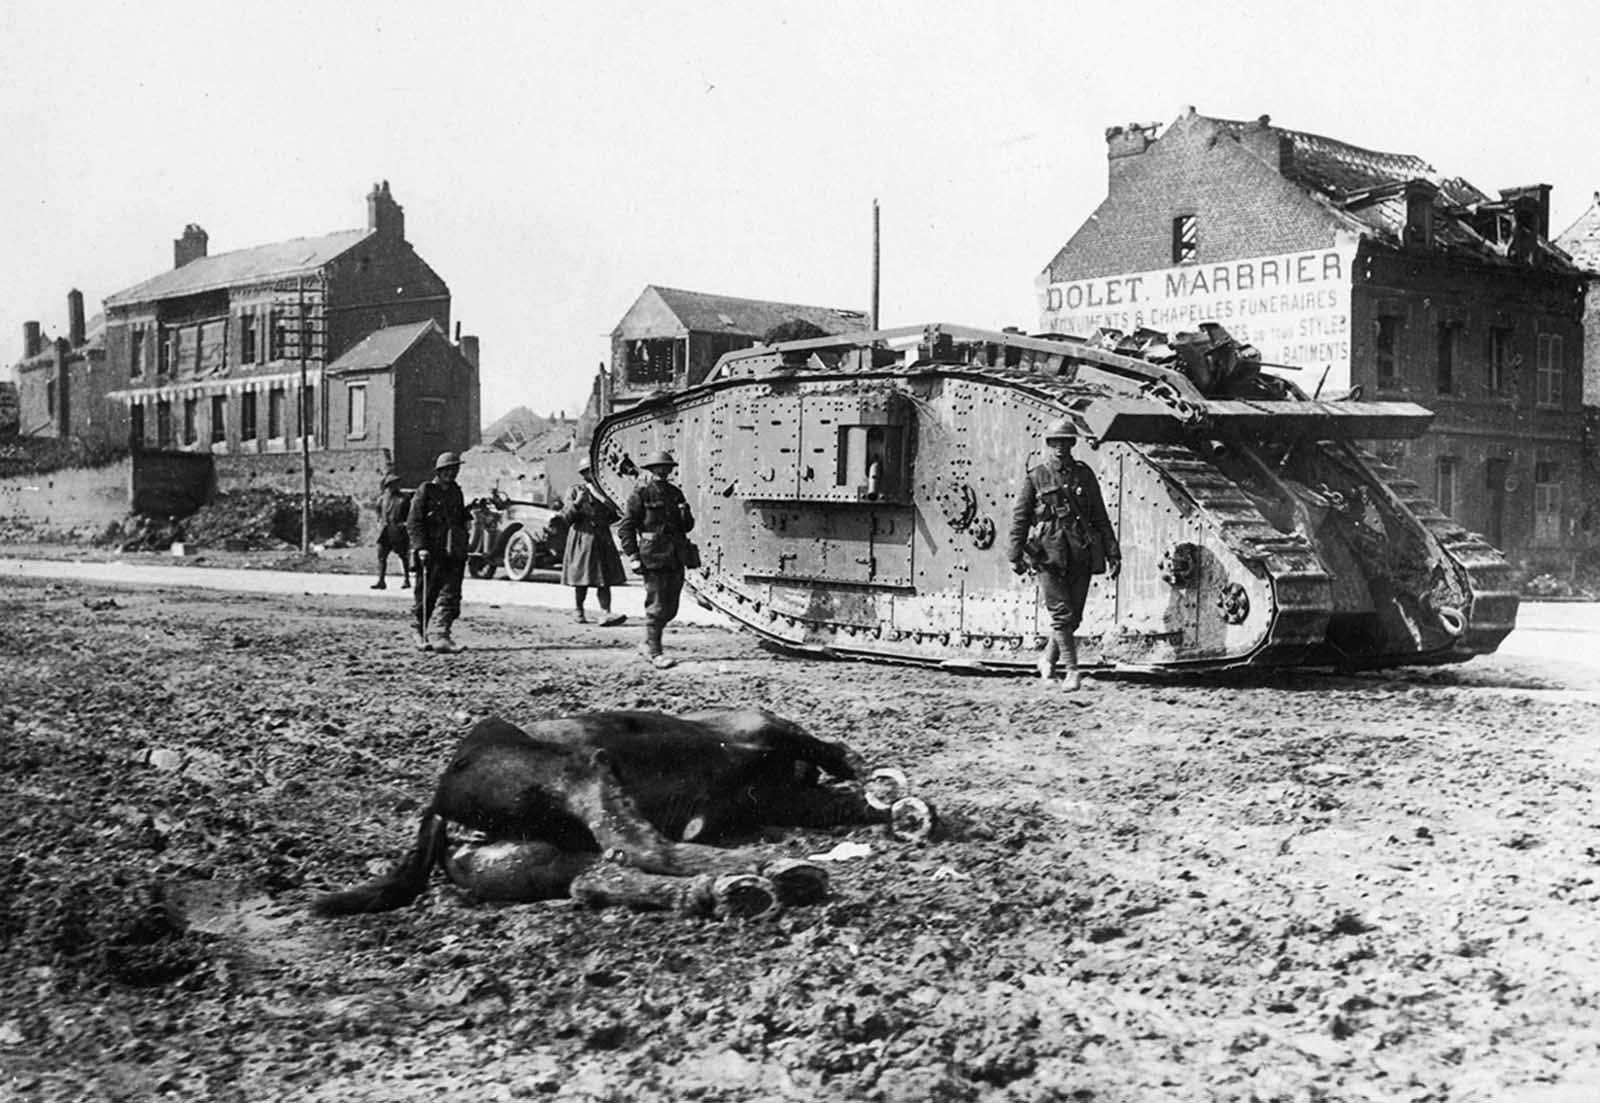 A British Mark V tank passes by a dead horse in the road in Peronne, France in 1918.